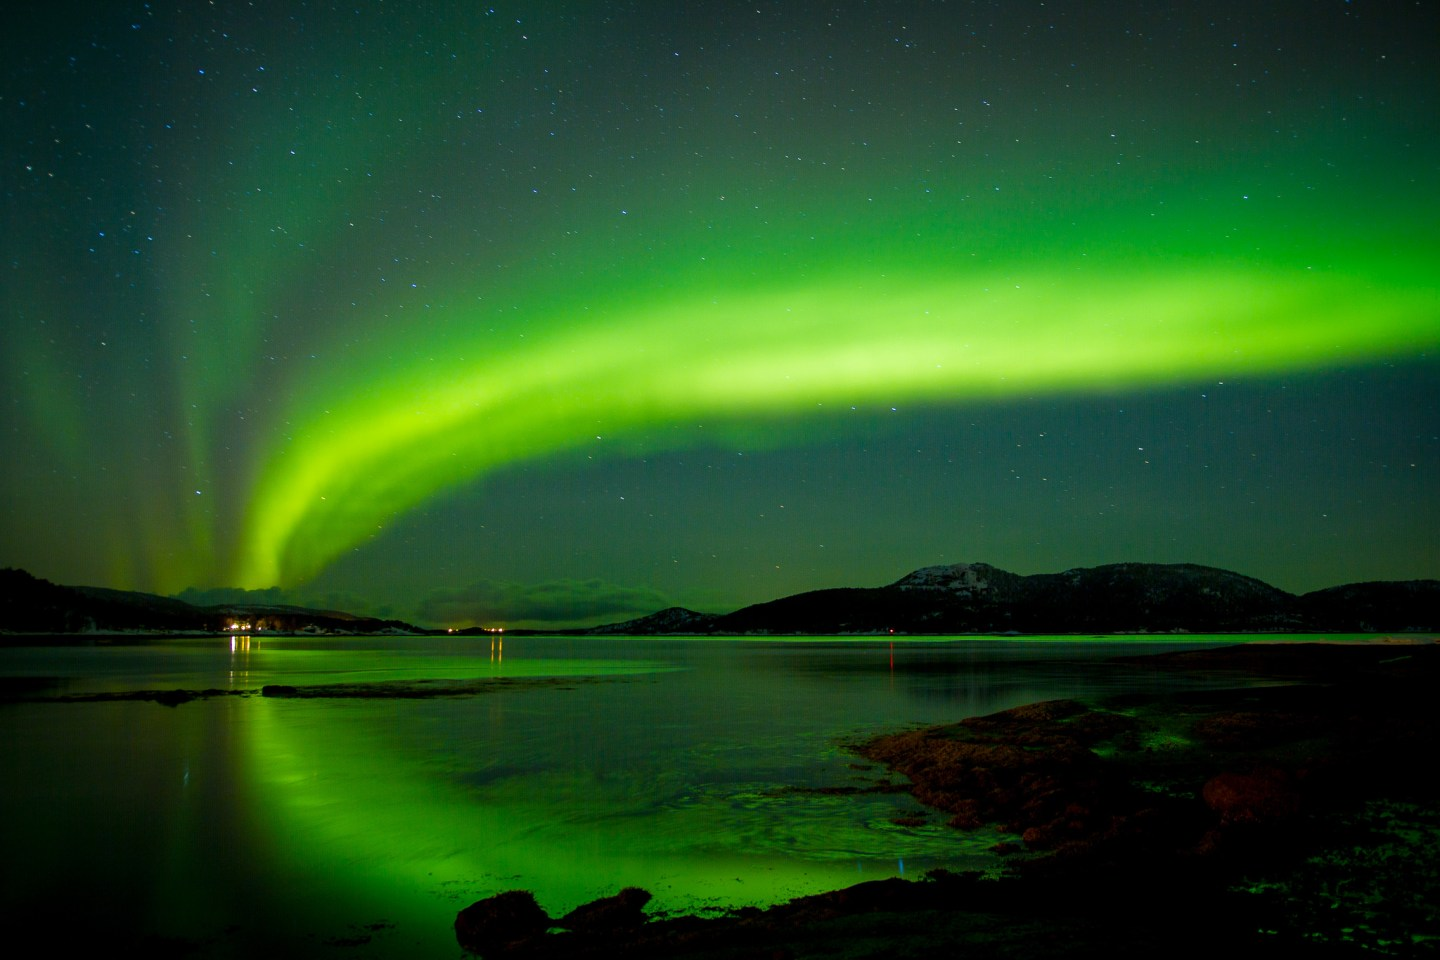 The best time to see northern lights in Norway